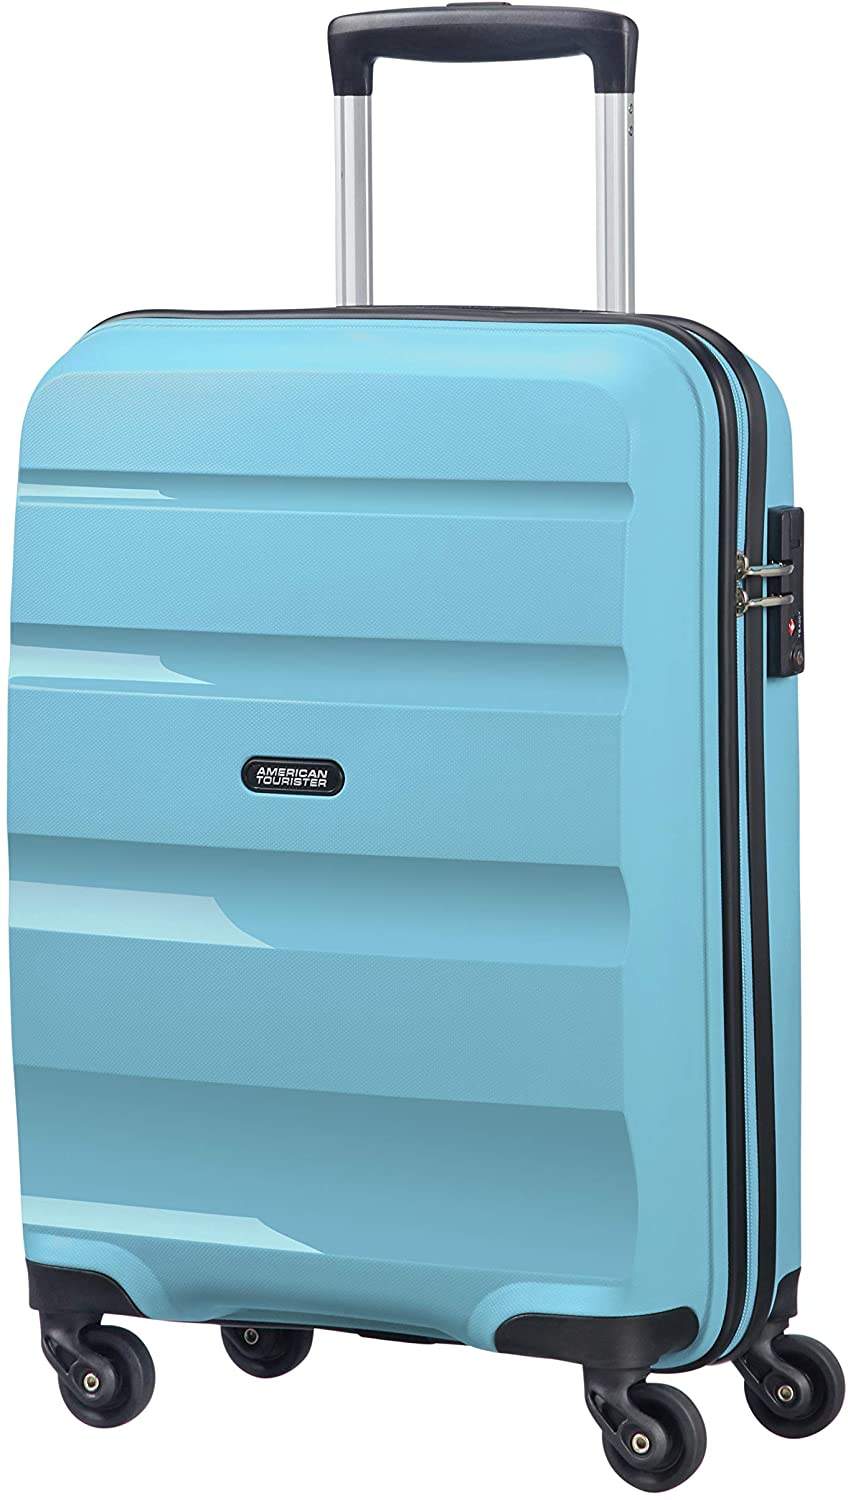 American Tourister Bon Air - Spinner Small Strict Equipaje de Mano